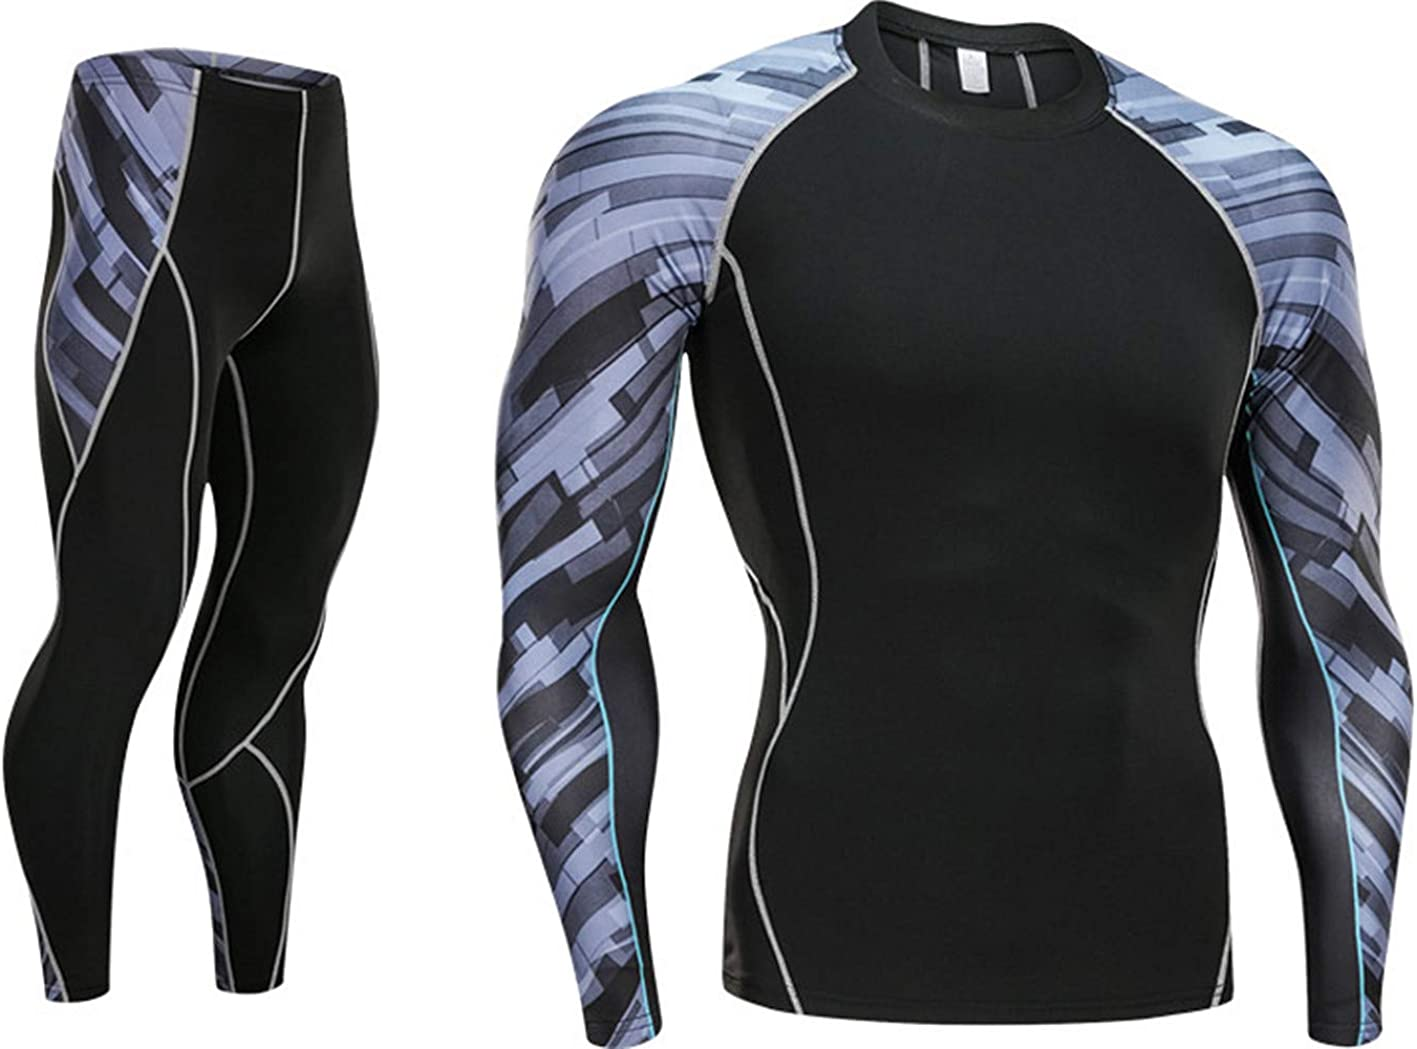 Ladies Compression Top Long Sleeve Base Layer Running Gym Training Tights Set